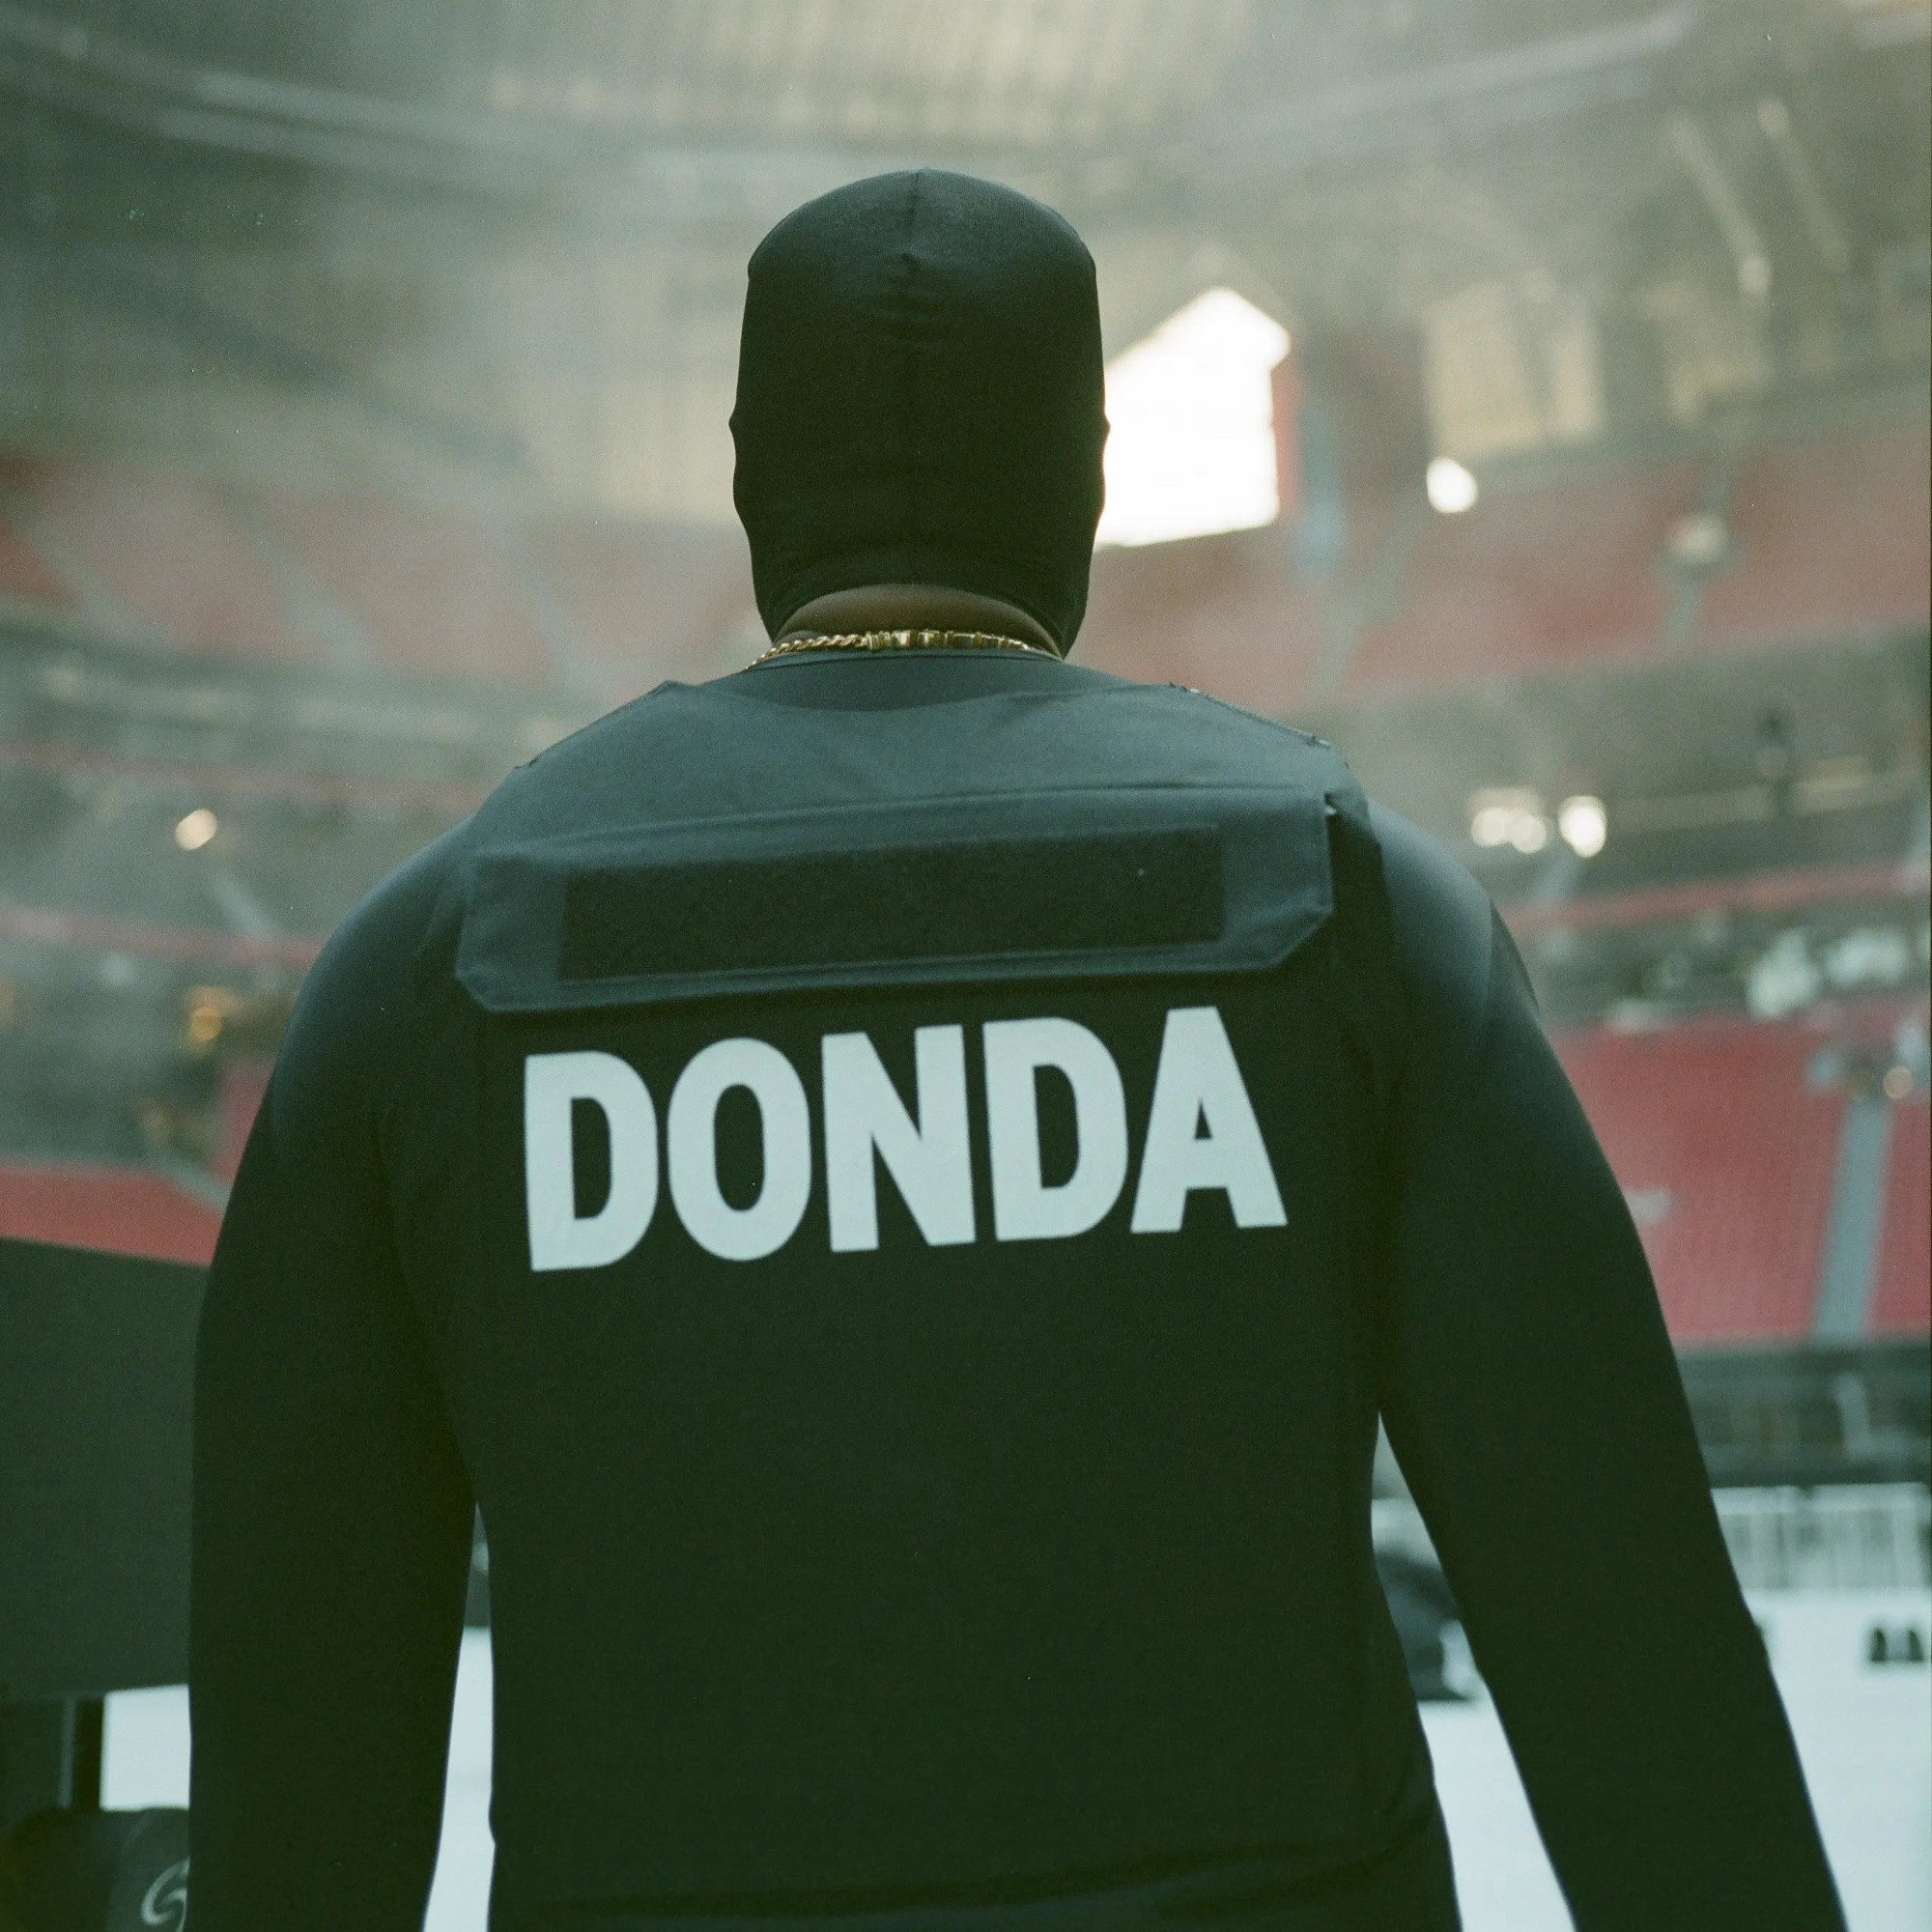 Rapper Kanye West In all black with his back to the camera, sporting a vest with Donda emblazoned at the back